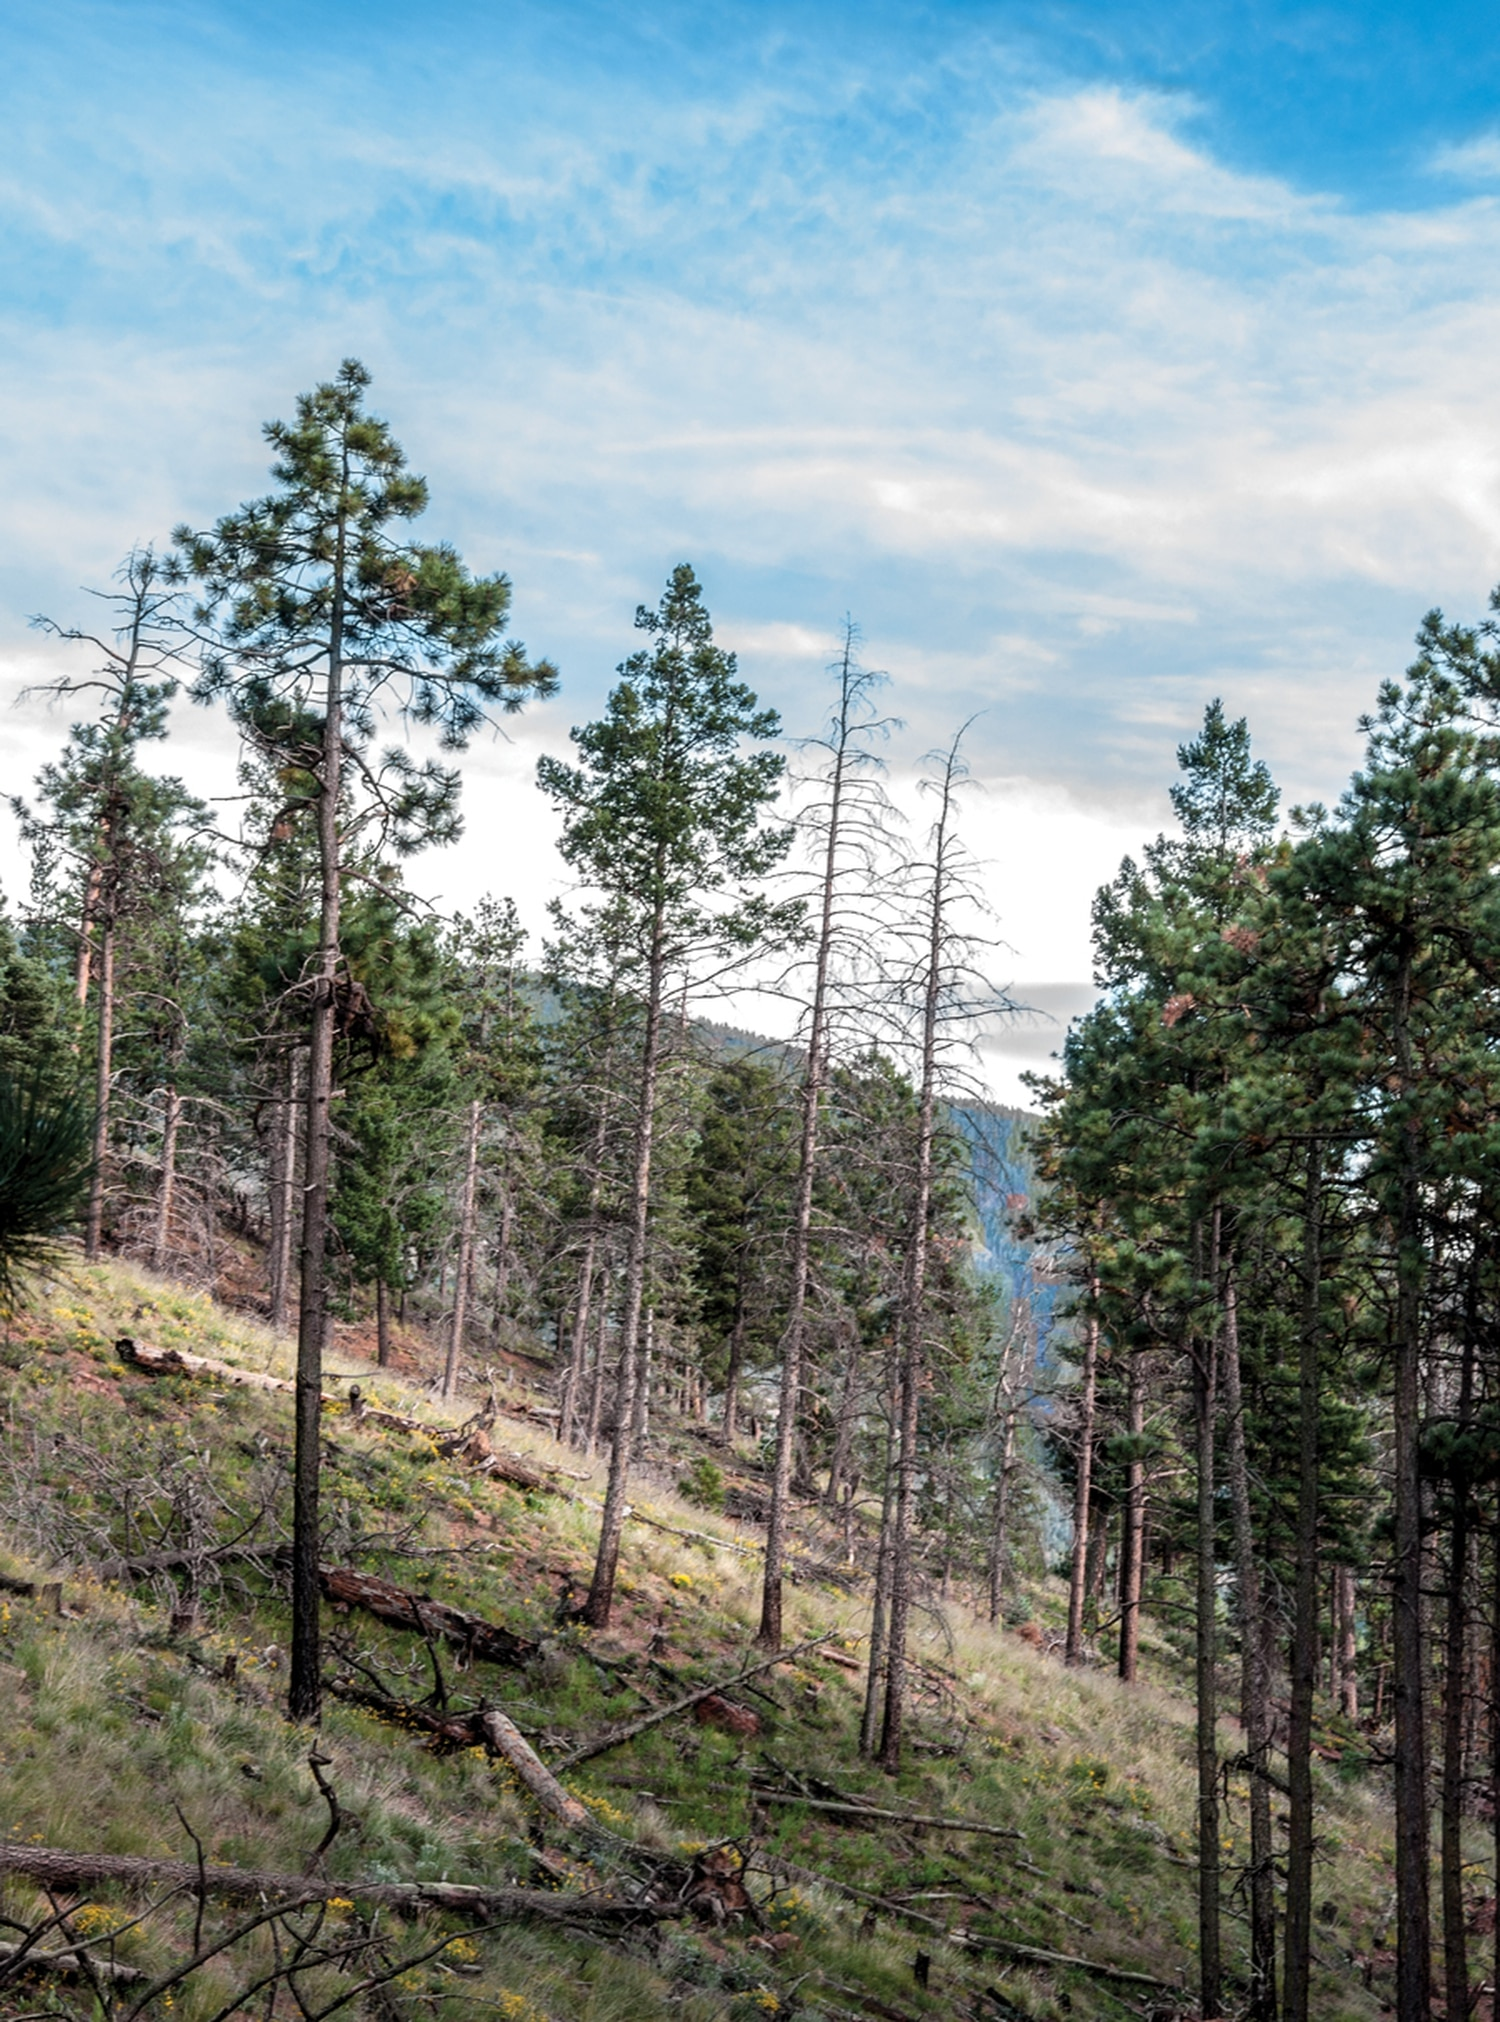 Santa Fe National Forest Service staff have been striving to make more of the forest look like this portion of the watershed, visible from the end of a trail near Hyde Memorial State Park.